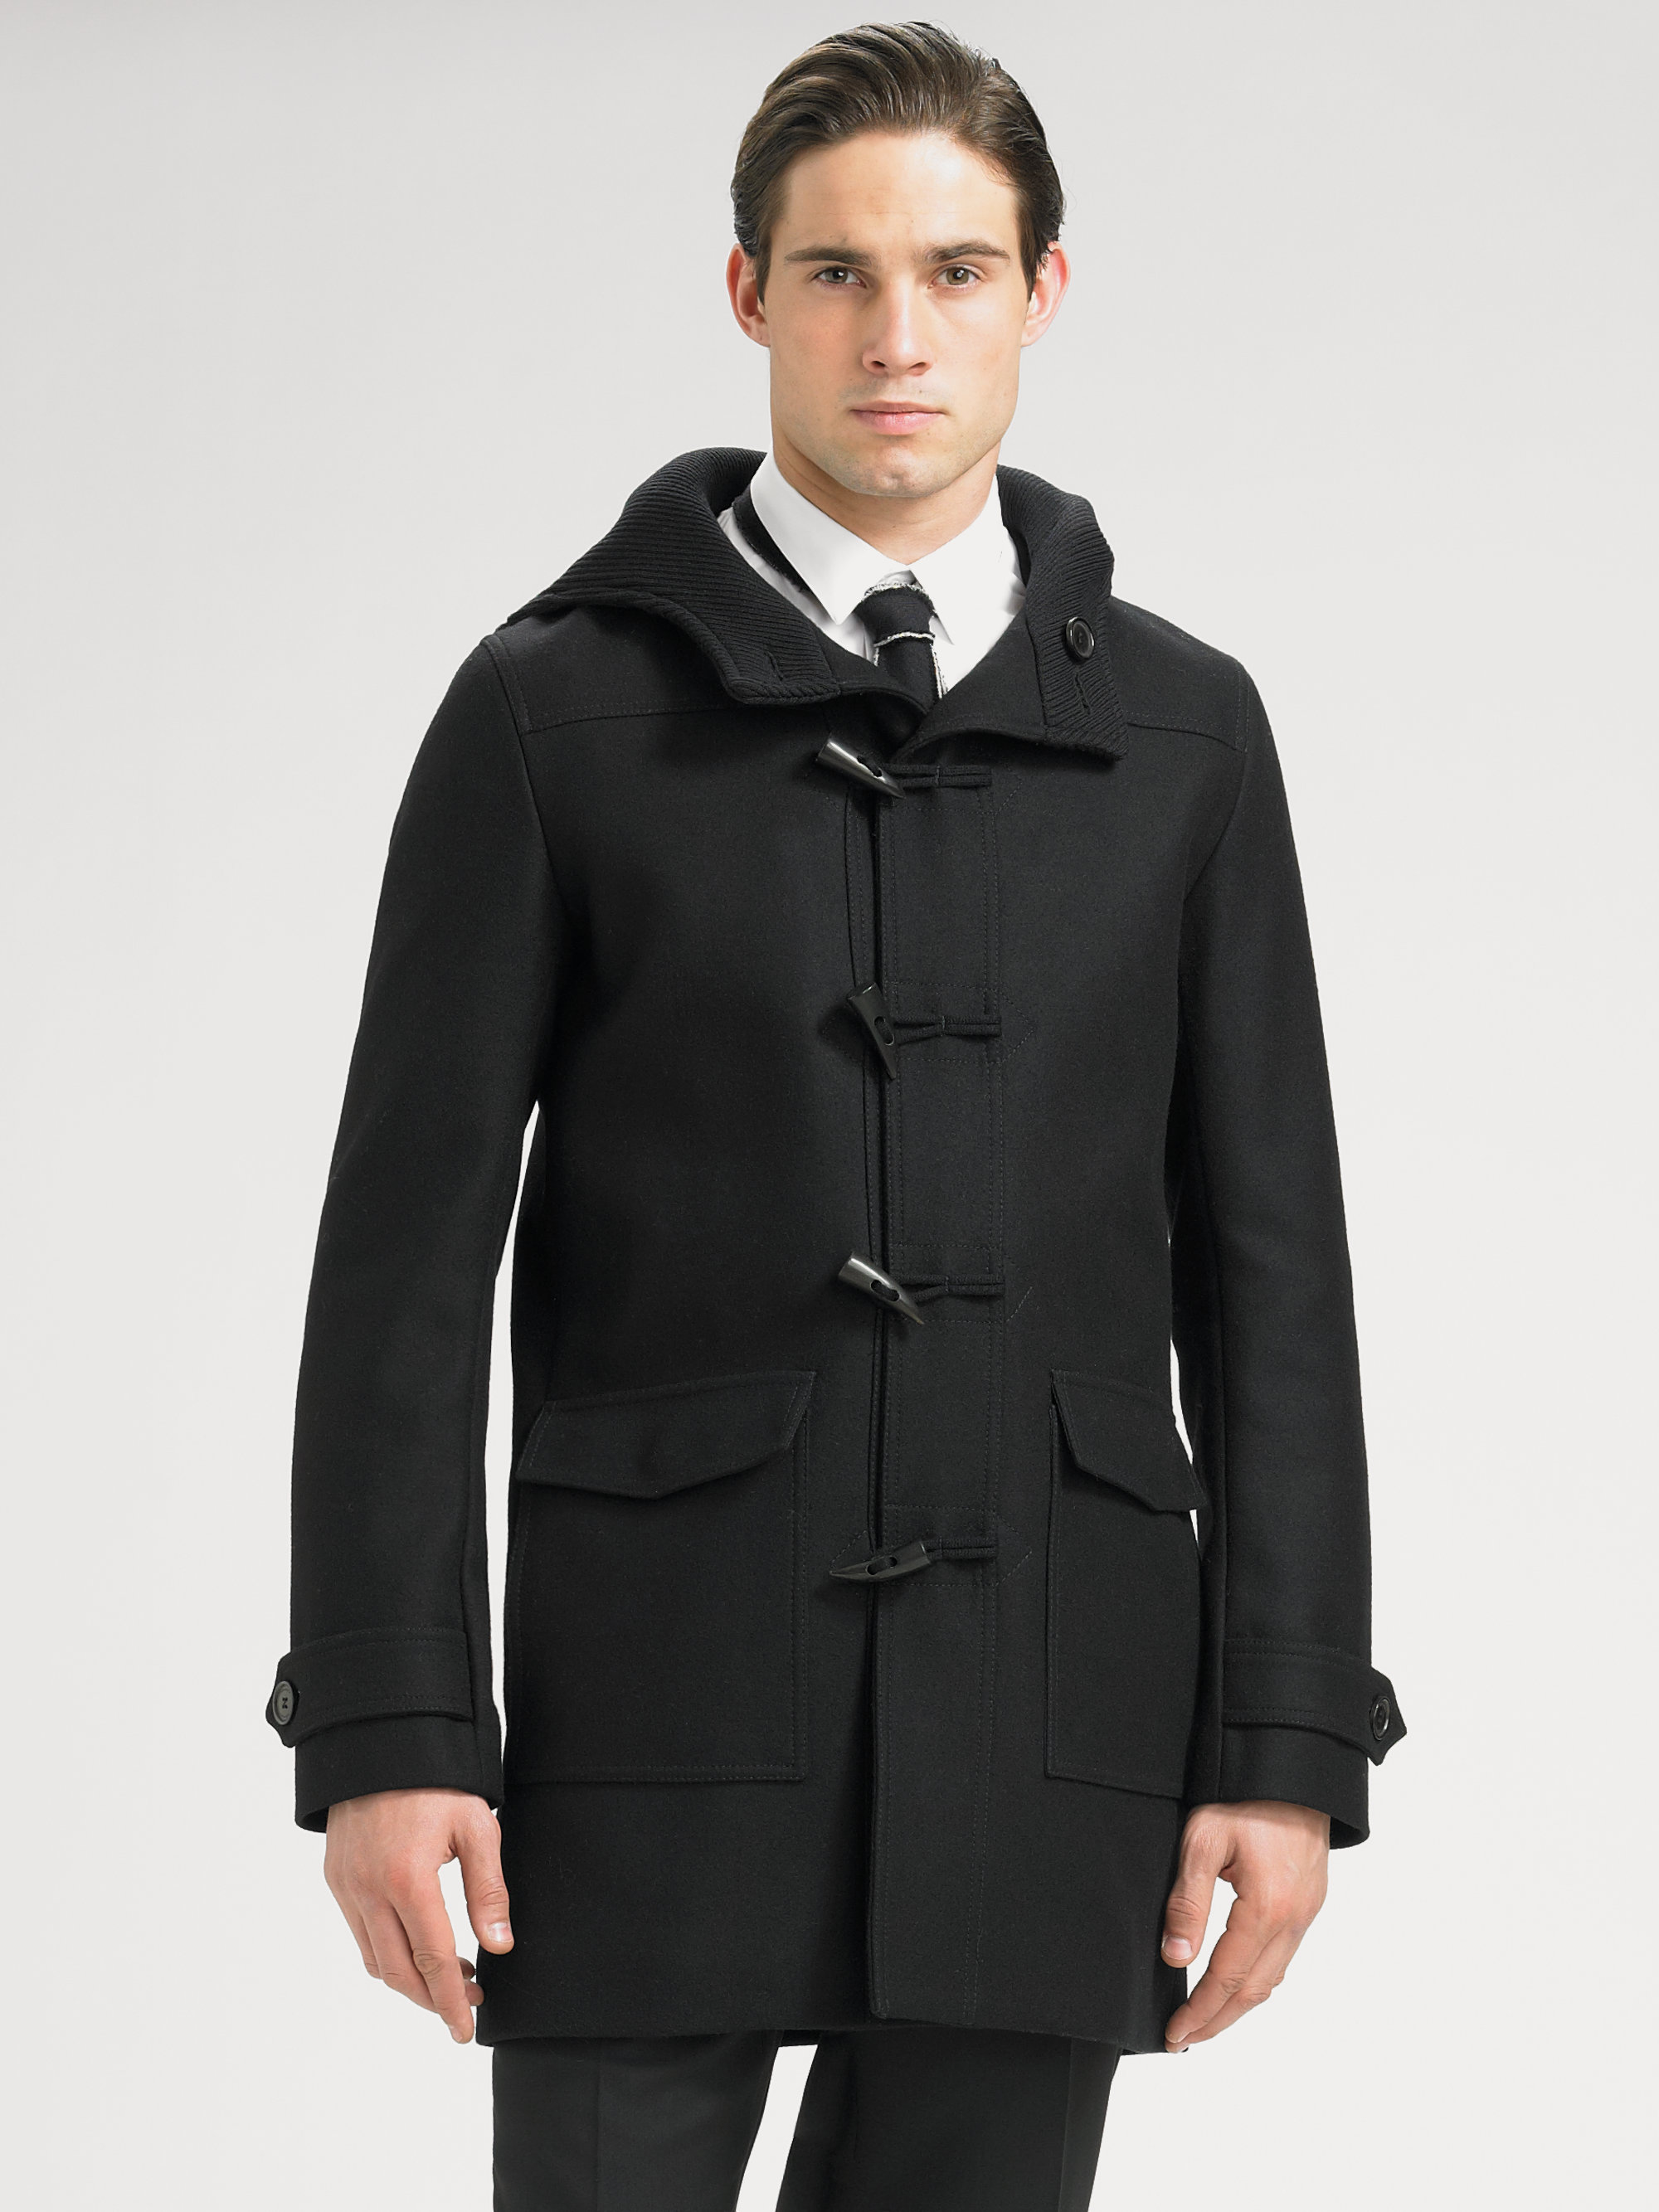 Dior homme Wool Duffel Coat in Black for Men | Lyst